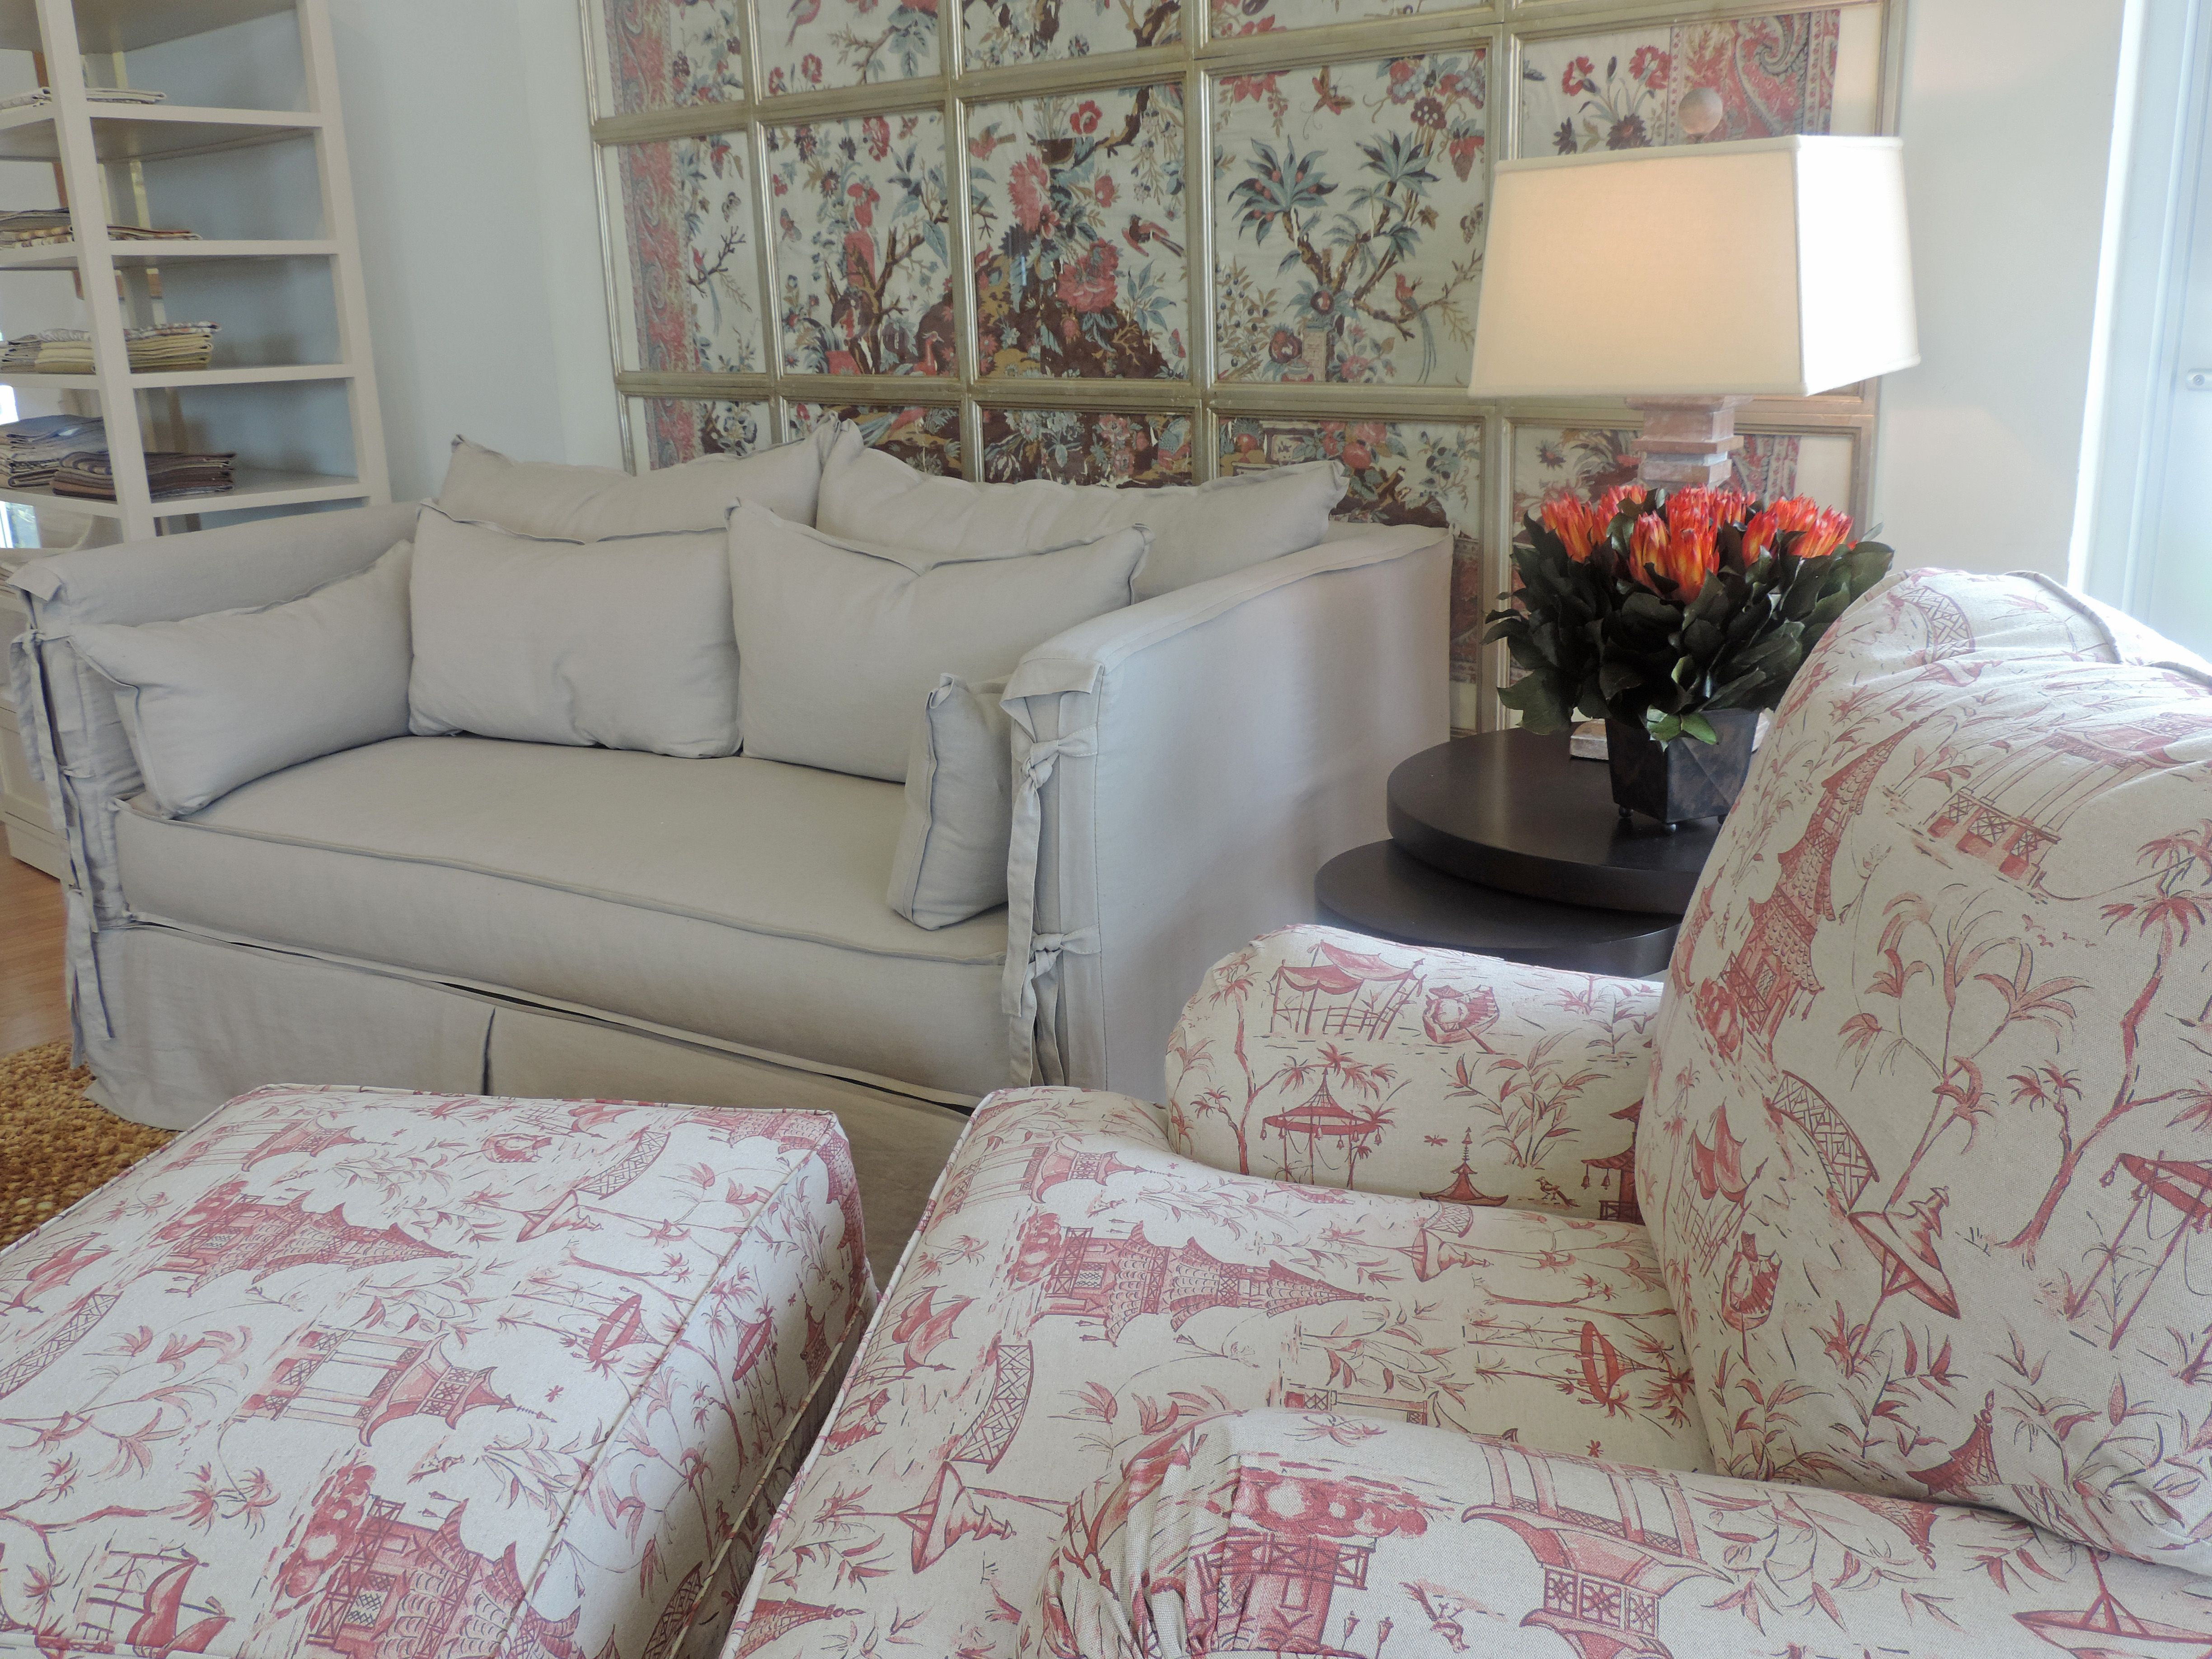 Chateau sofa slipcover with arm ties fun fabric pattern